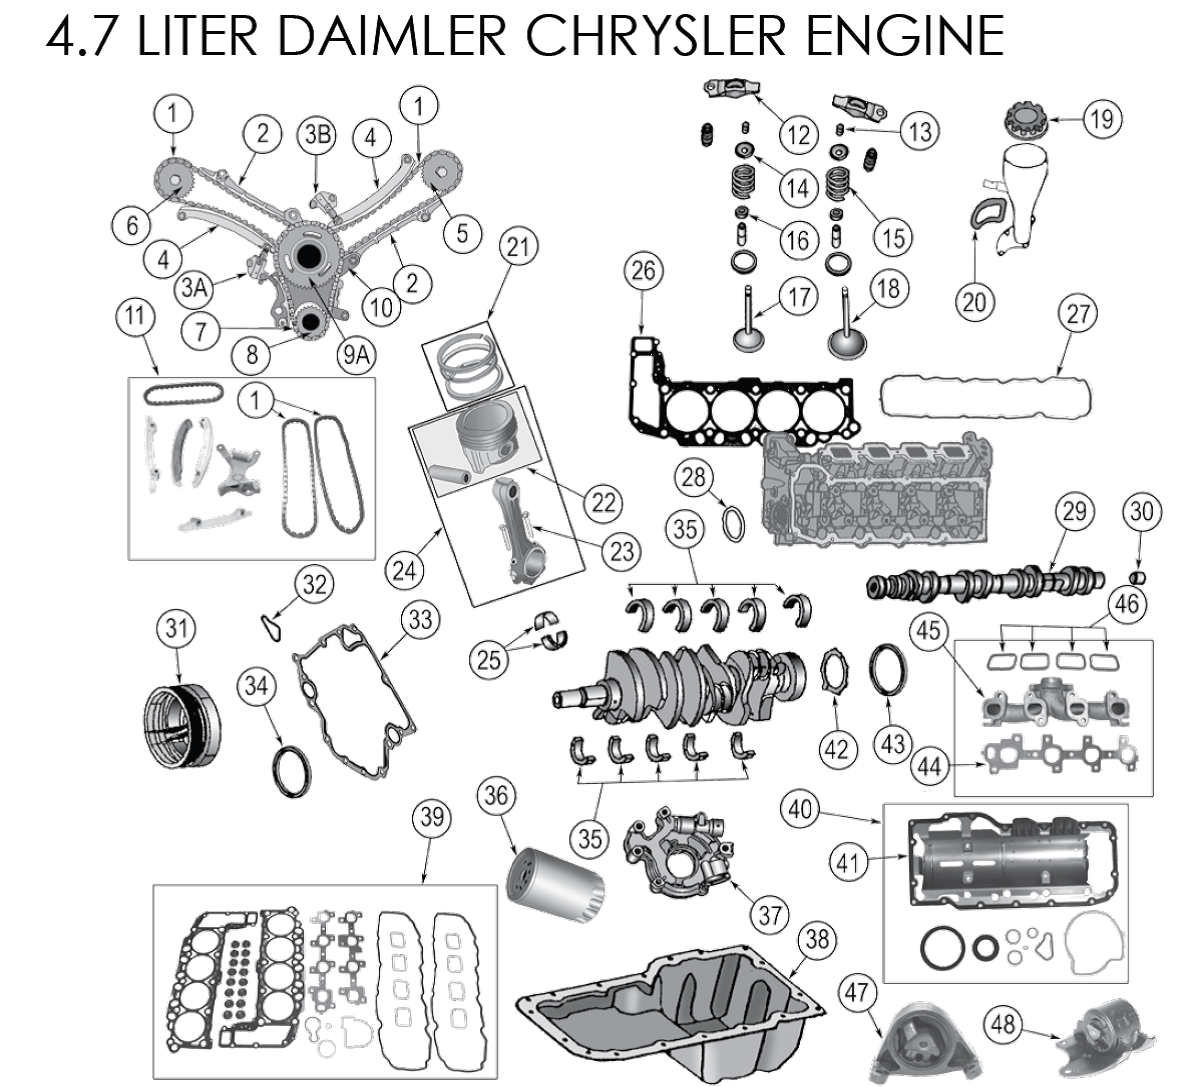 Chrysler 300 A C  pressor Location additionally Dodge ram camshaft position sensor moreover Dodge Caliber 2007 Repair Manual Service Manuals together with 2002 Dodge Intrepid Timing Chain together with Dodge 2 7 Liter Engine Exploded View Diagram. on 2002 dodge intrepid thermostat location